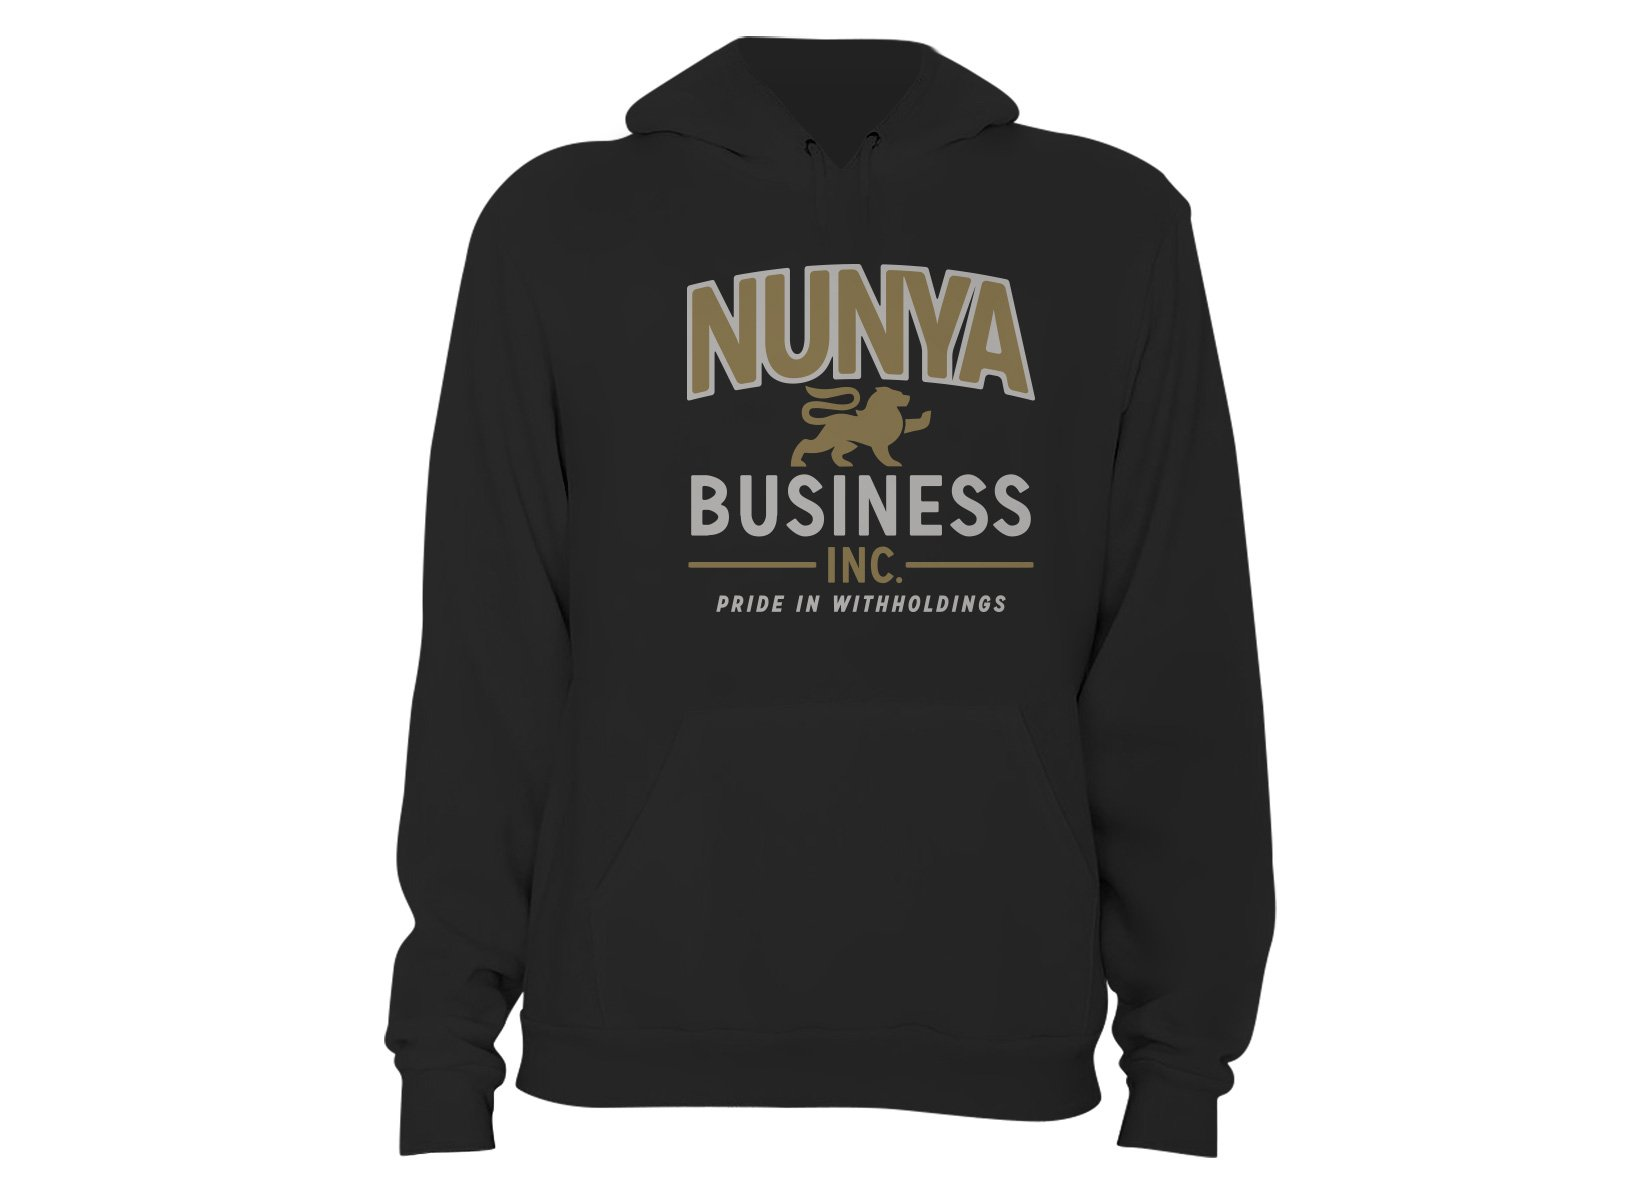 Nunya Business on Hoodie